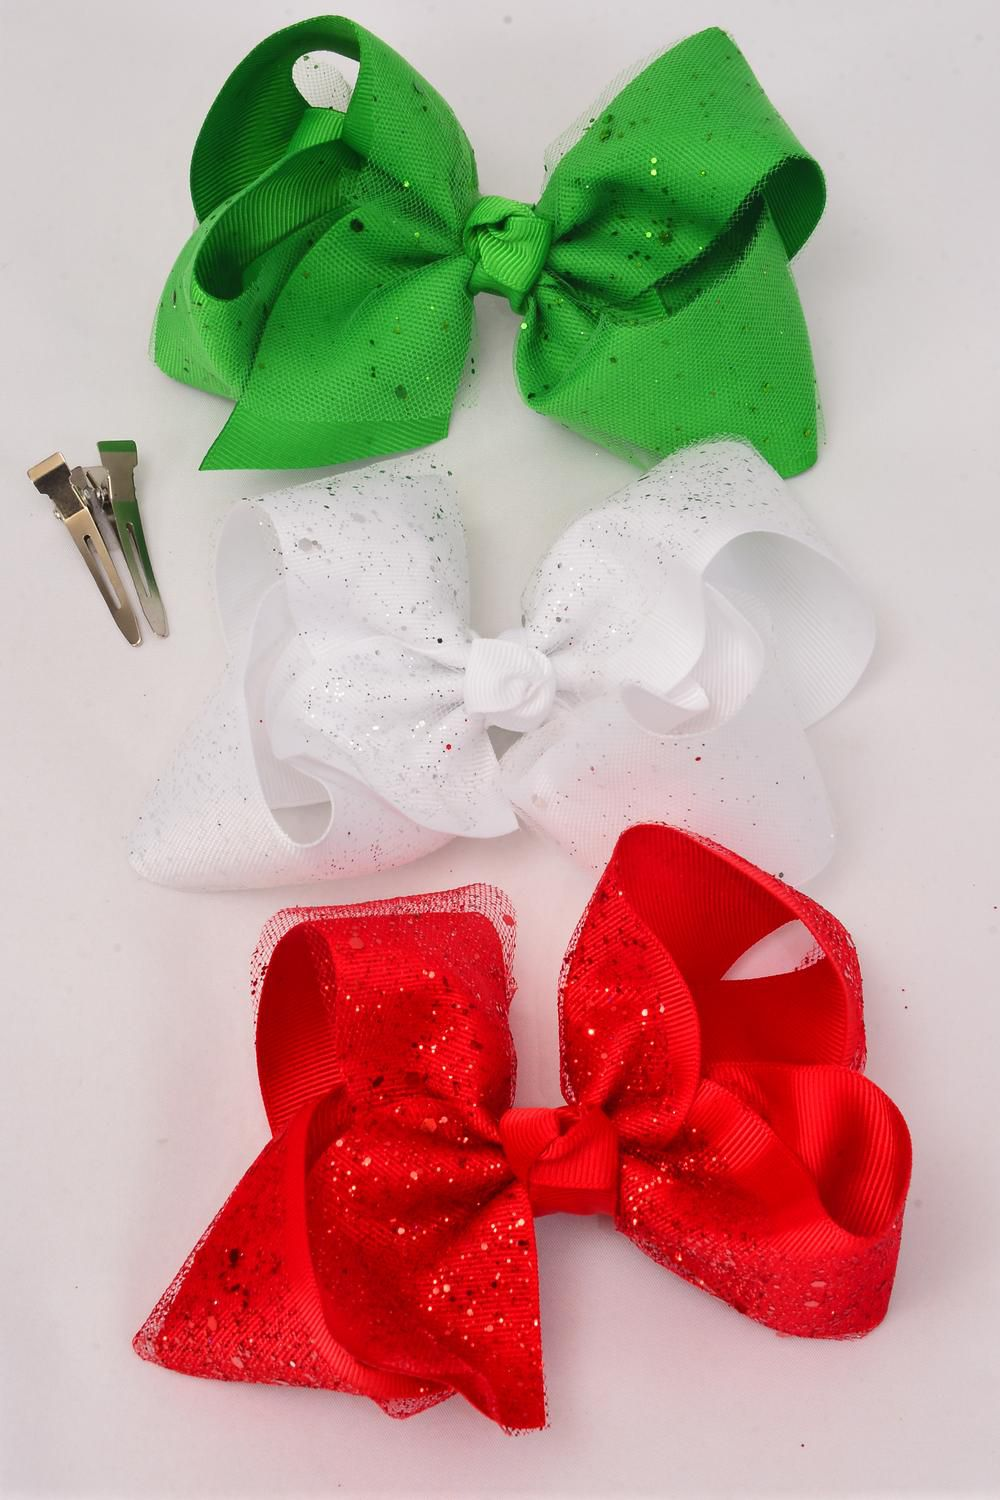 "Hair Bow Jumbo Large XMAS Double Layer Bow Metallic Red White Green Mix Grosgrain Bowtie/DZ **Alligator Clip** Size-6""x 5"" Wide,4 Red,4 White,4 Black,3 Color Asst,Clip Strip & UPC Code."